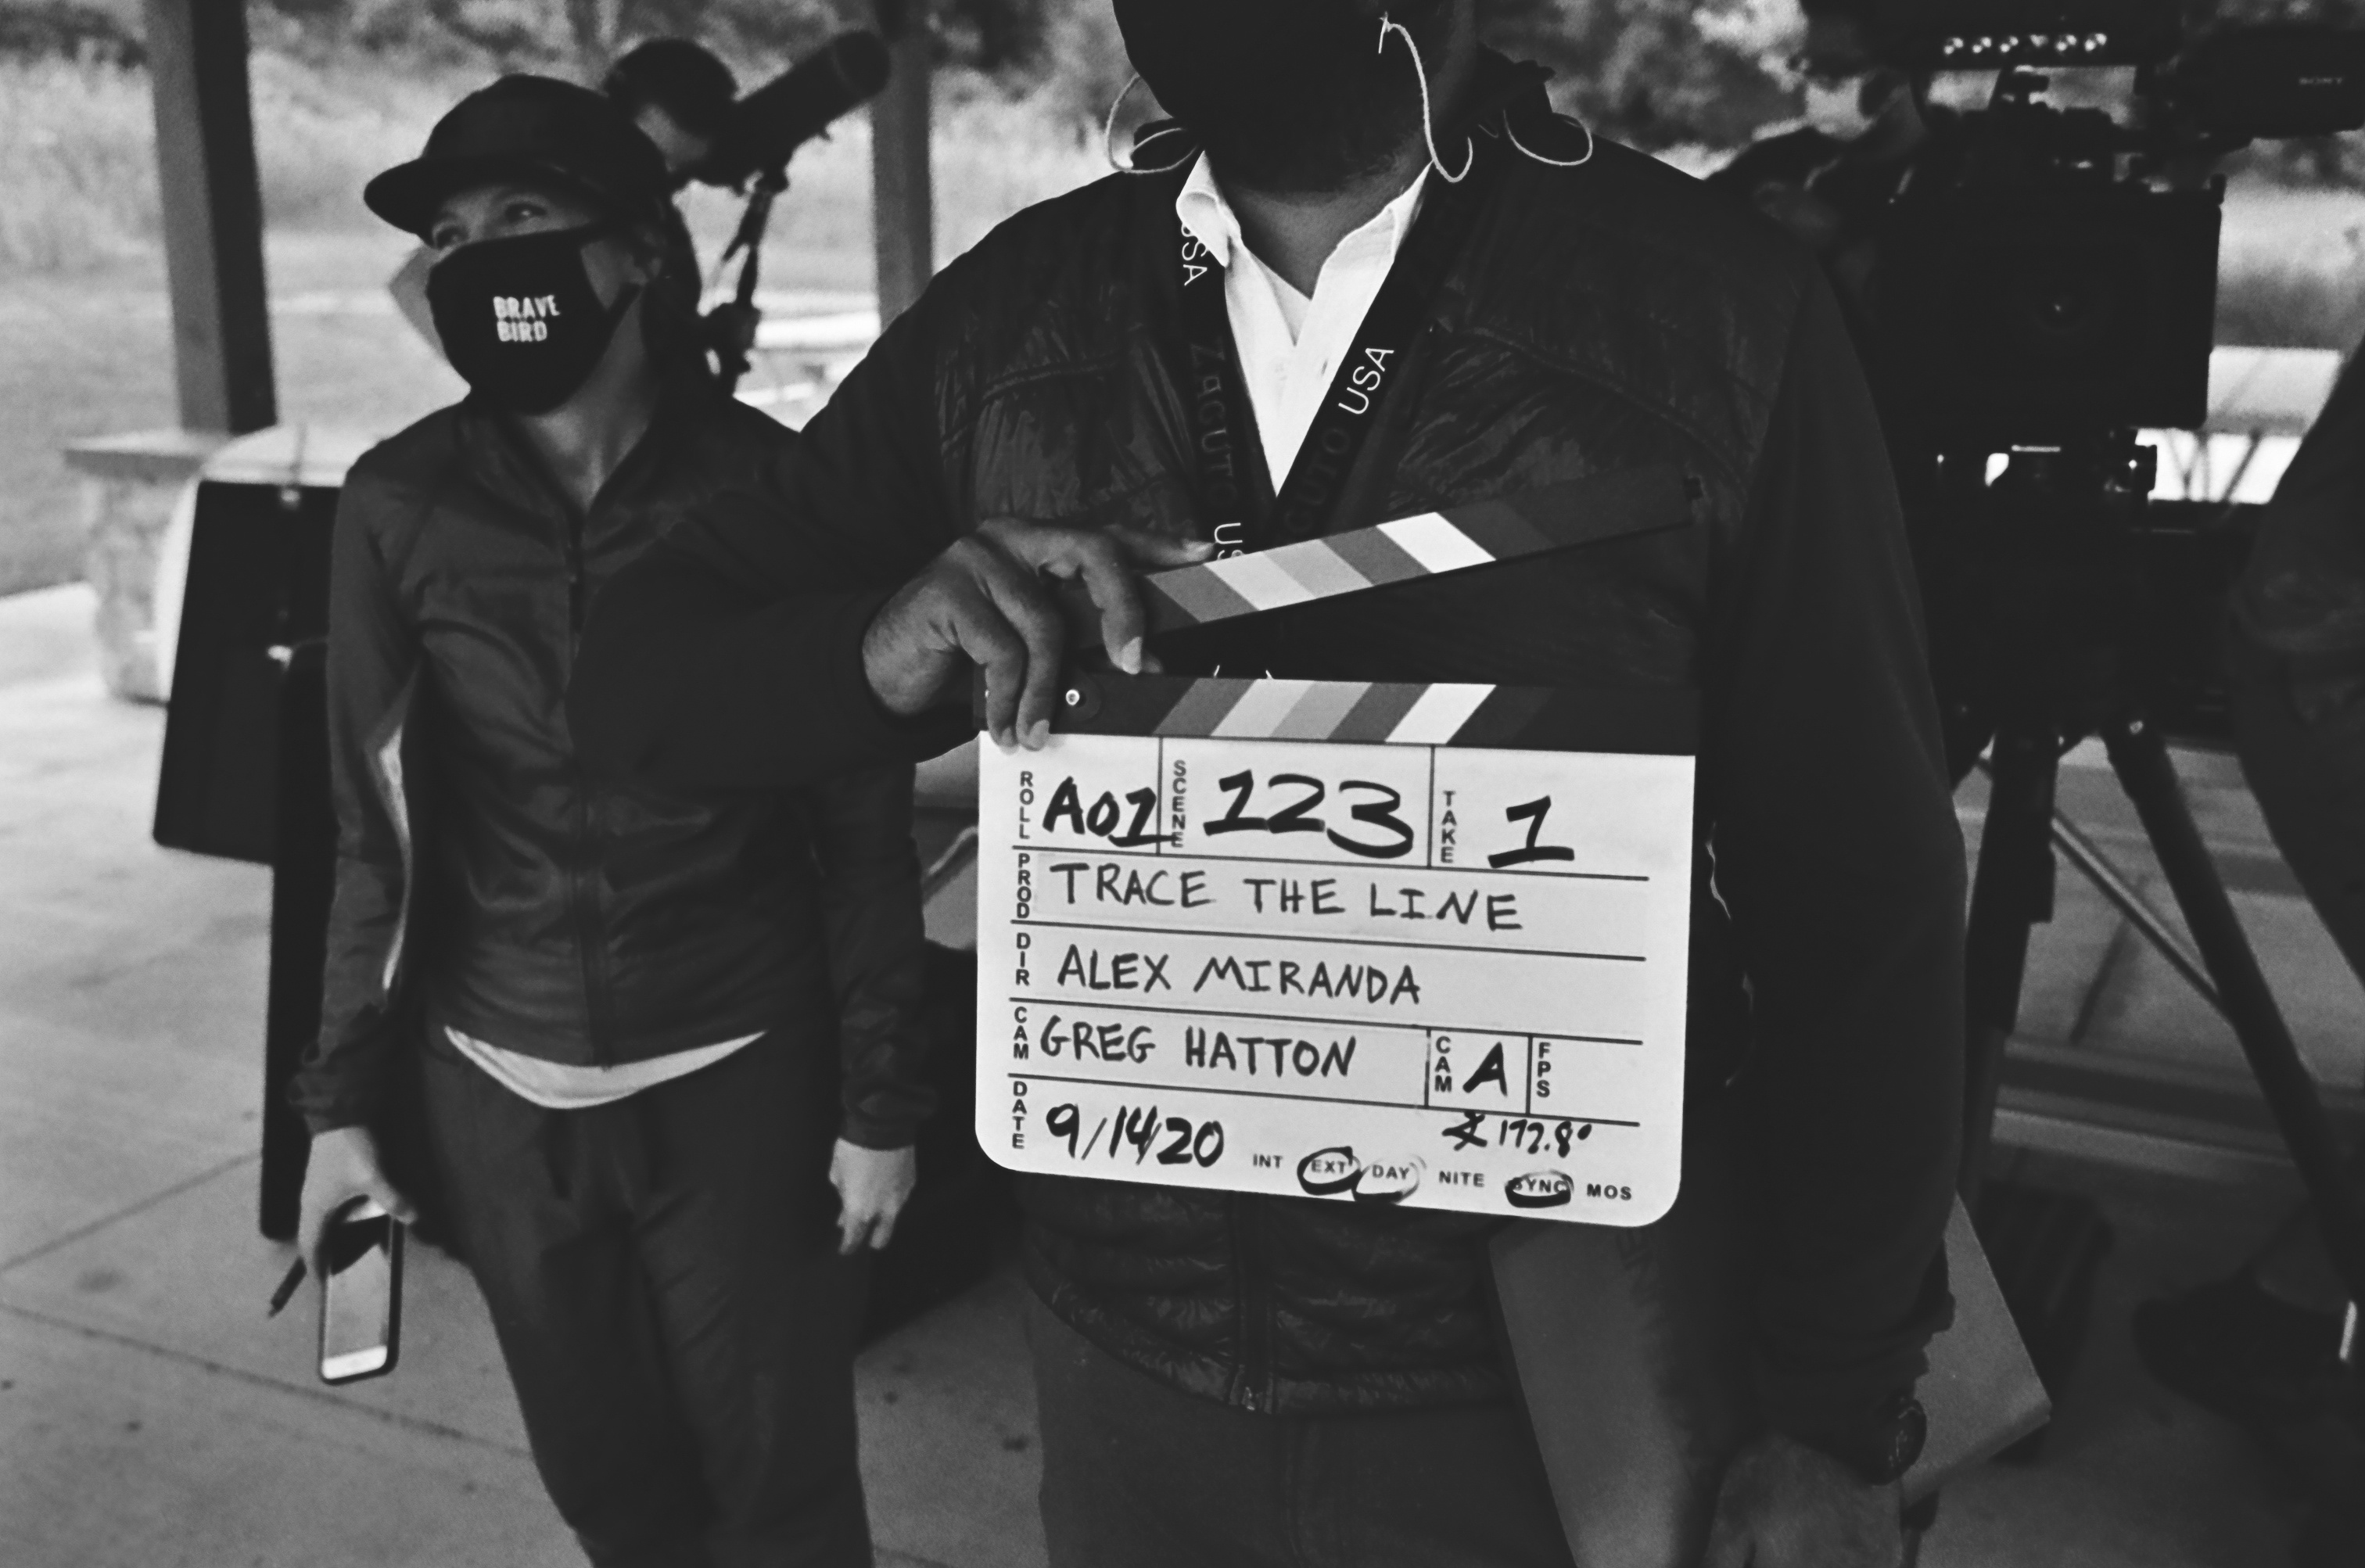 """Behind the scenes with Director Alejandro Miranda Cruz and Producer Noel Miranda holding the slate for """"Trace the Line""""."""